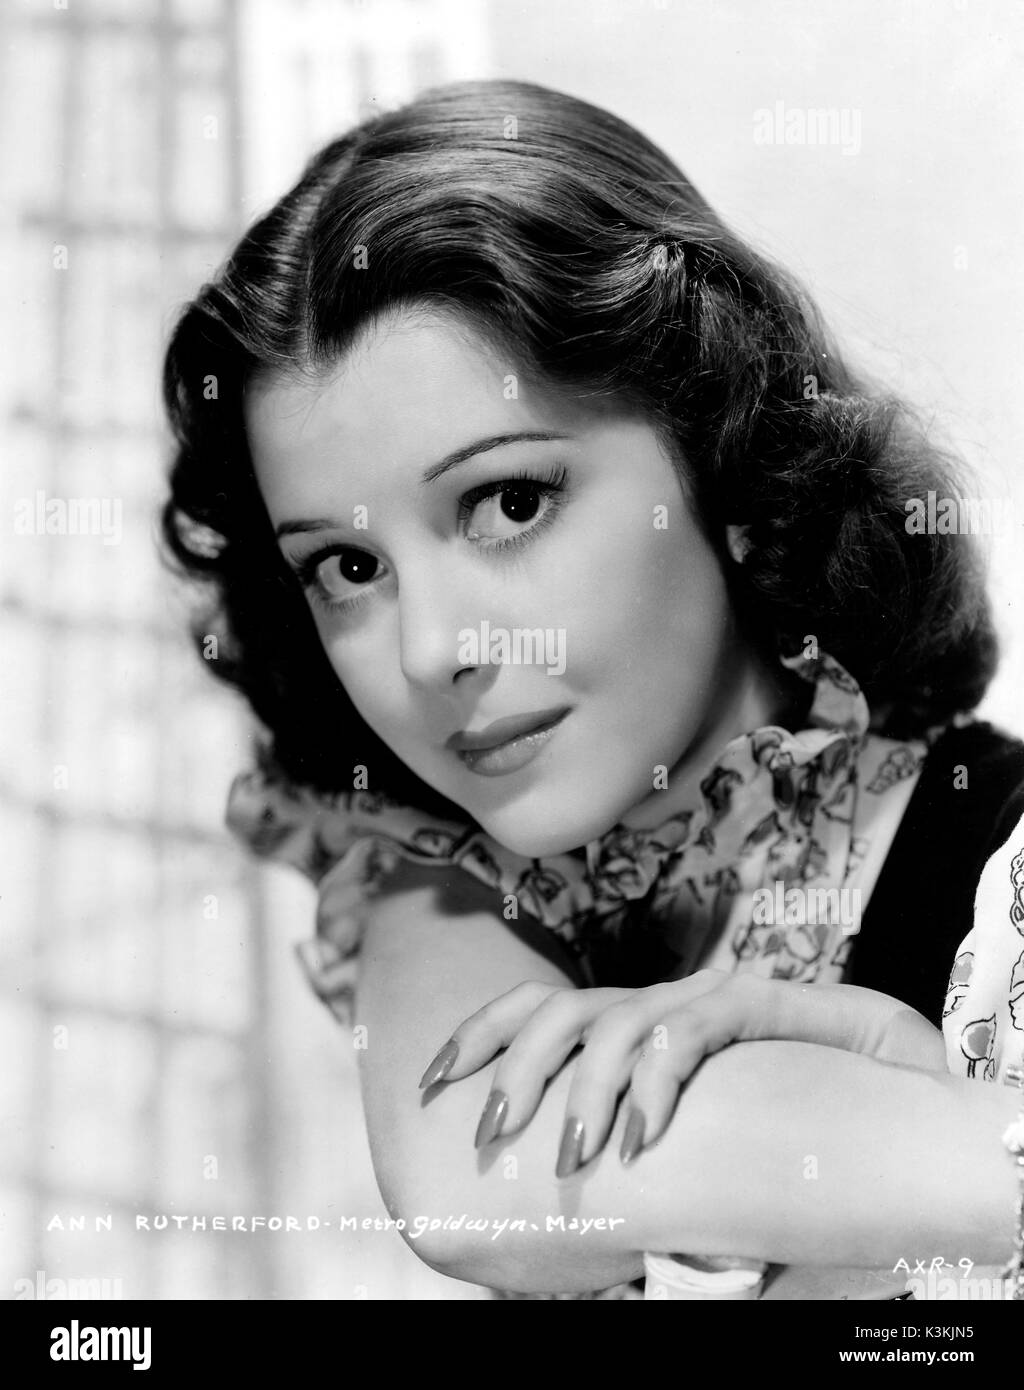 Ann rutherford nude